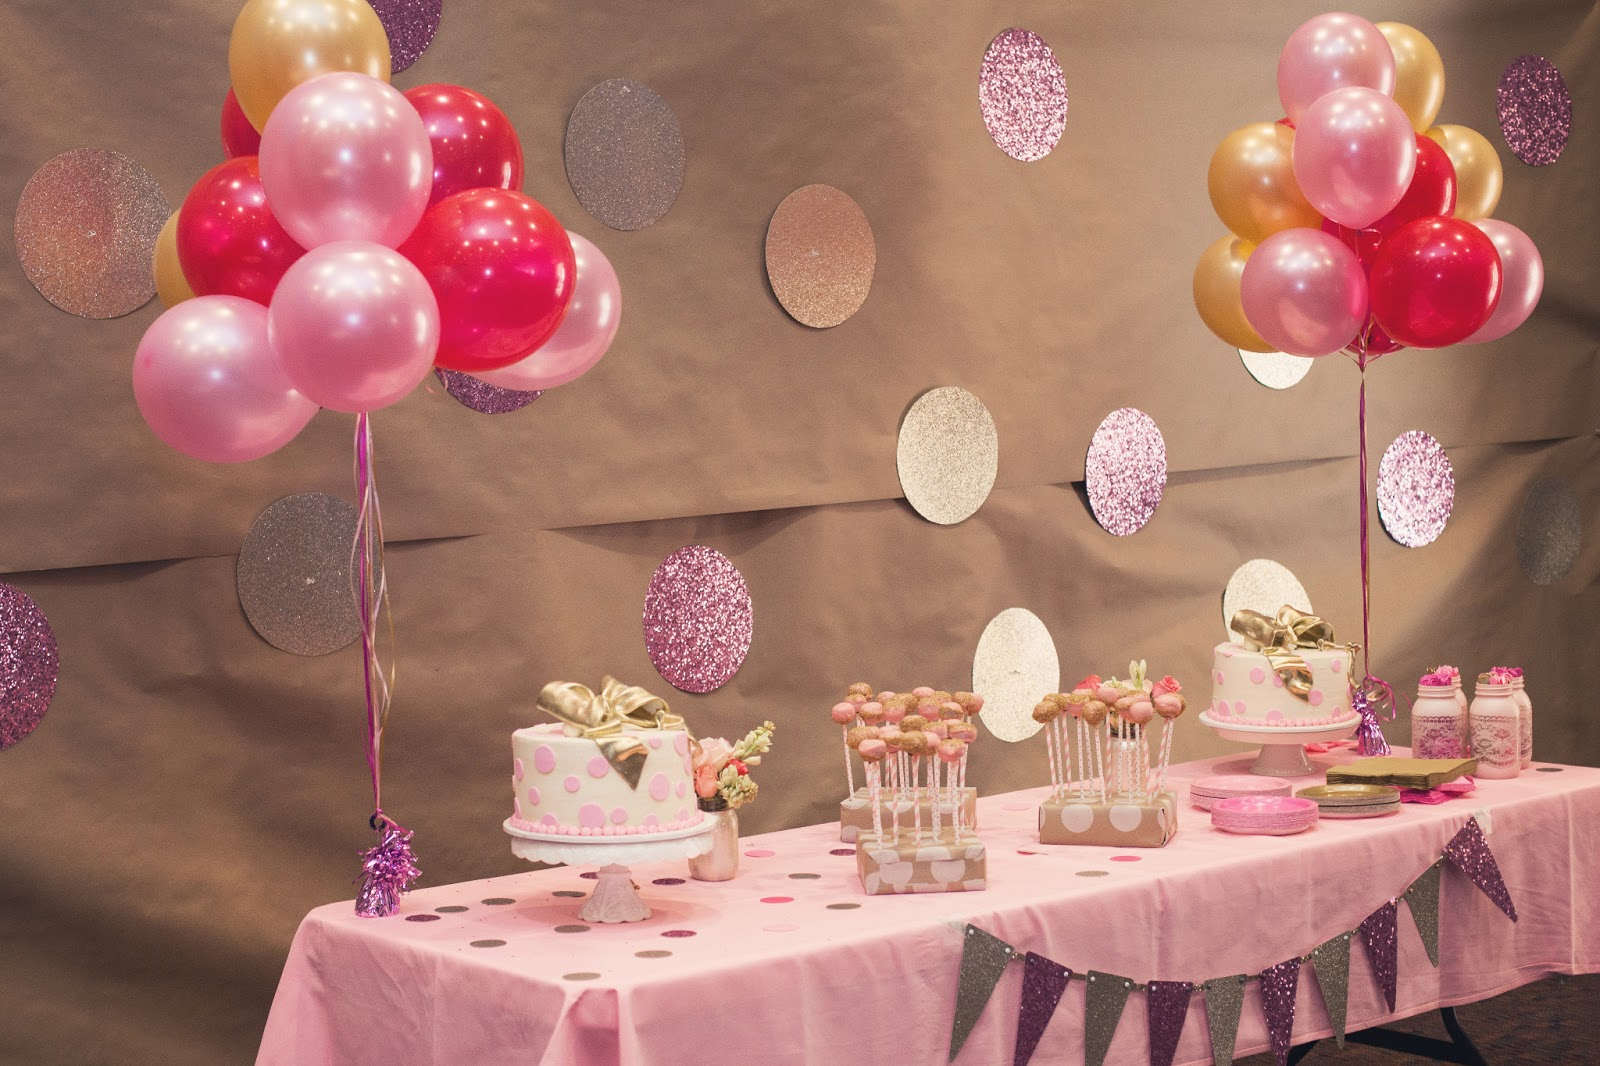 Nat your average girl 1st birthday party decor for 1st birthday decoration themes